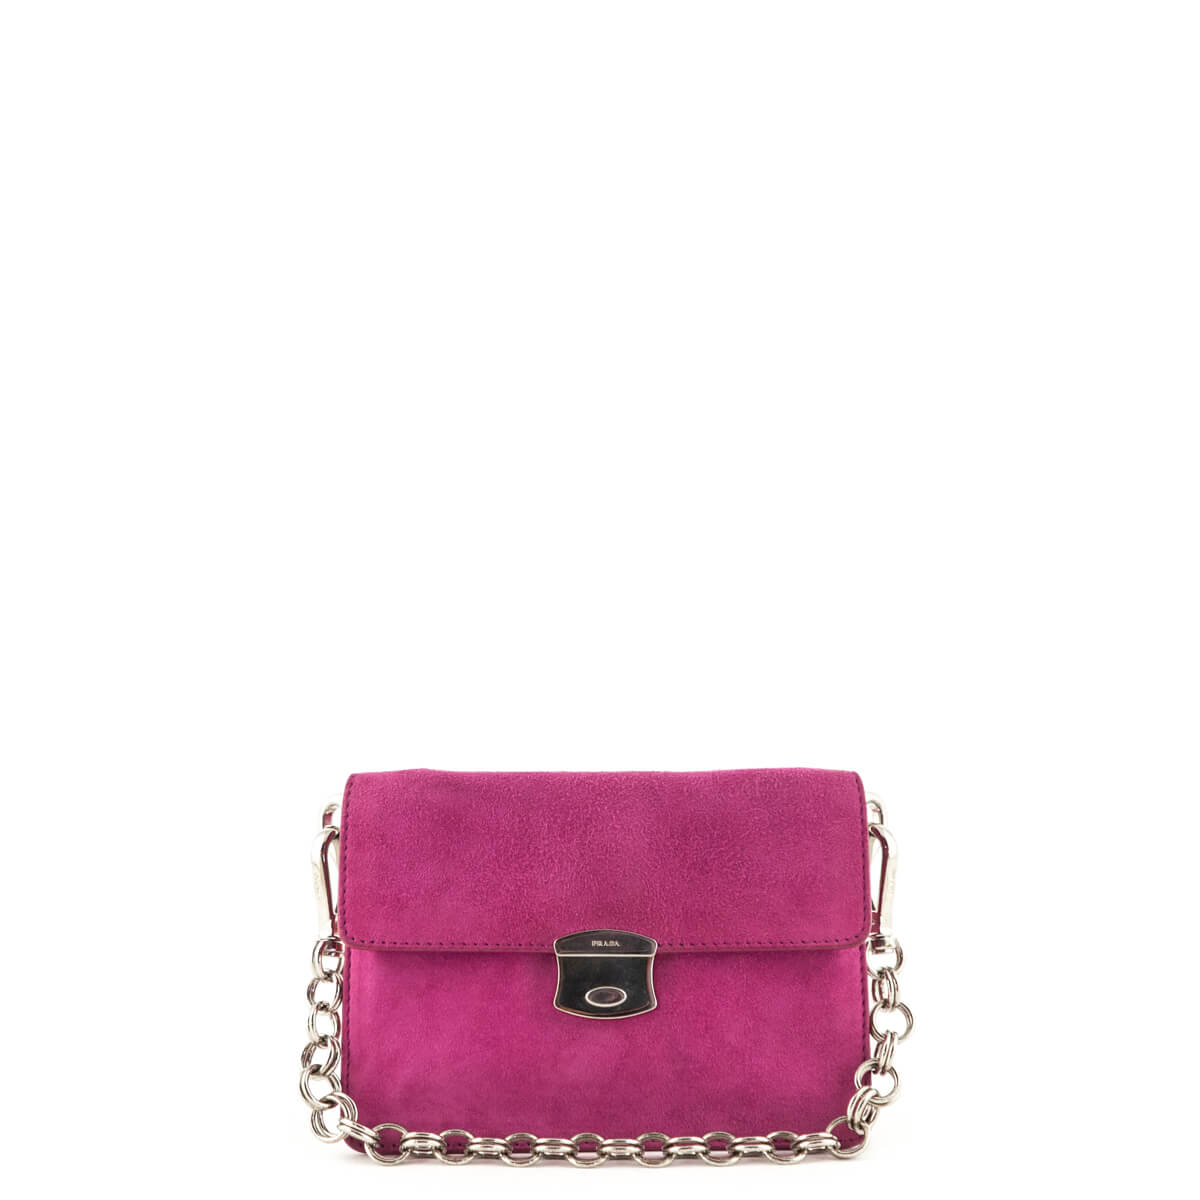 6ef201d805 Prada Fuchsia Suede Mini Handbag - LOVE that BAG - Preowned Authentic  Designer Handbags ...